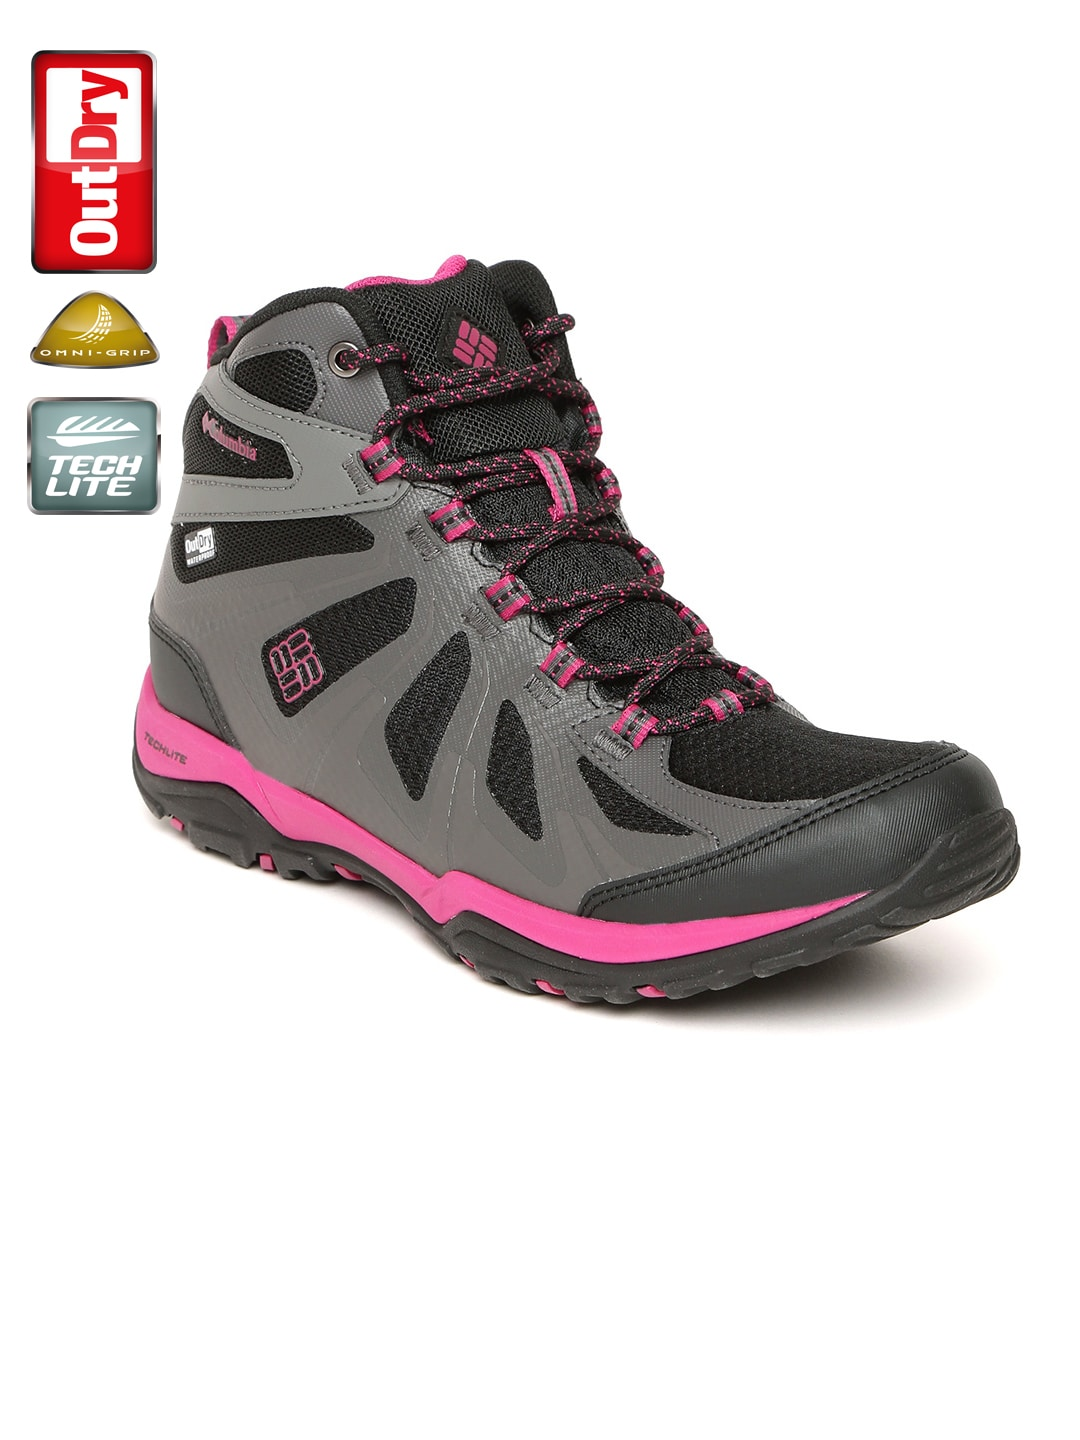 9508bf4c5 Hiking - Buy Hiking Shoes